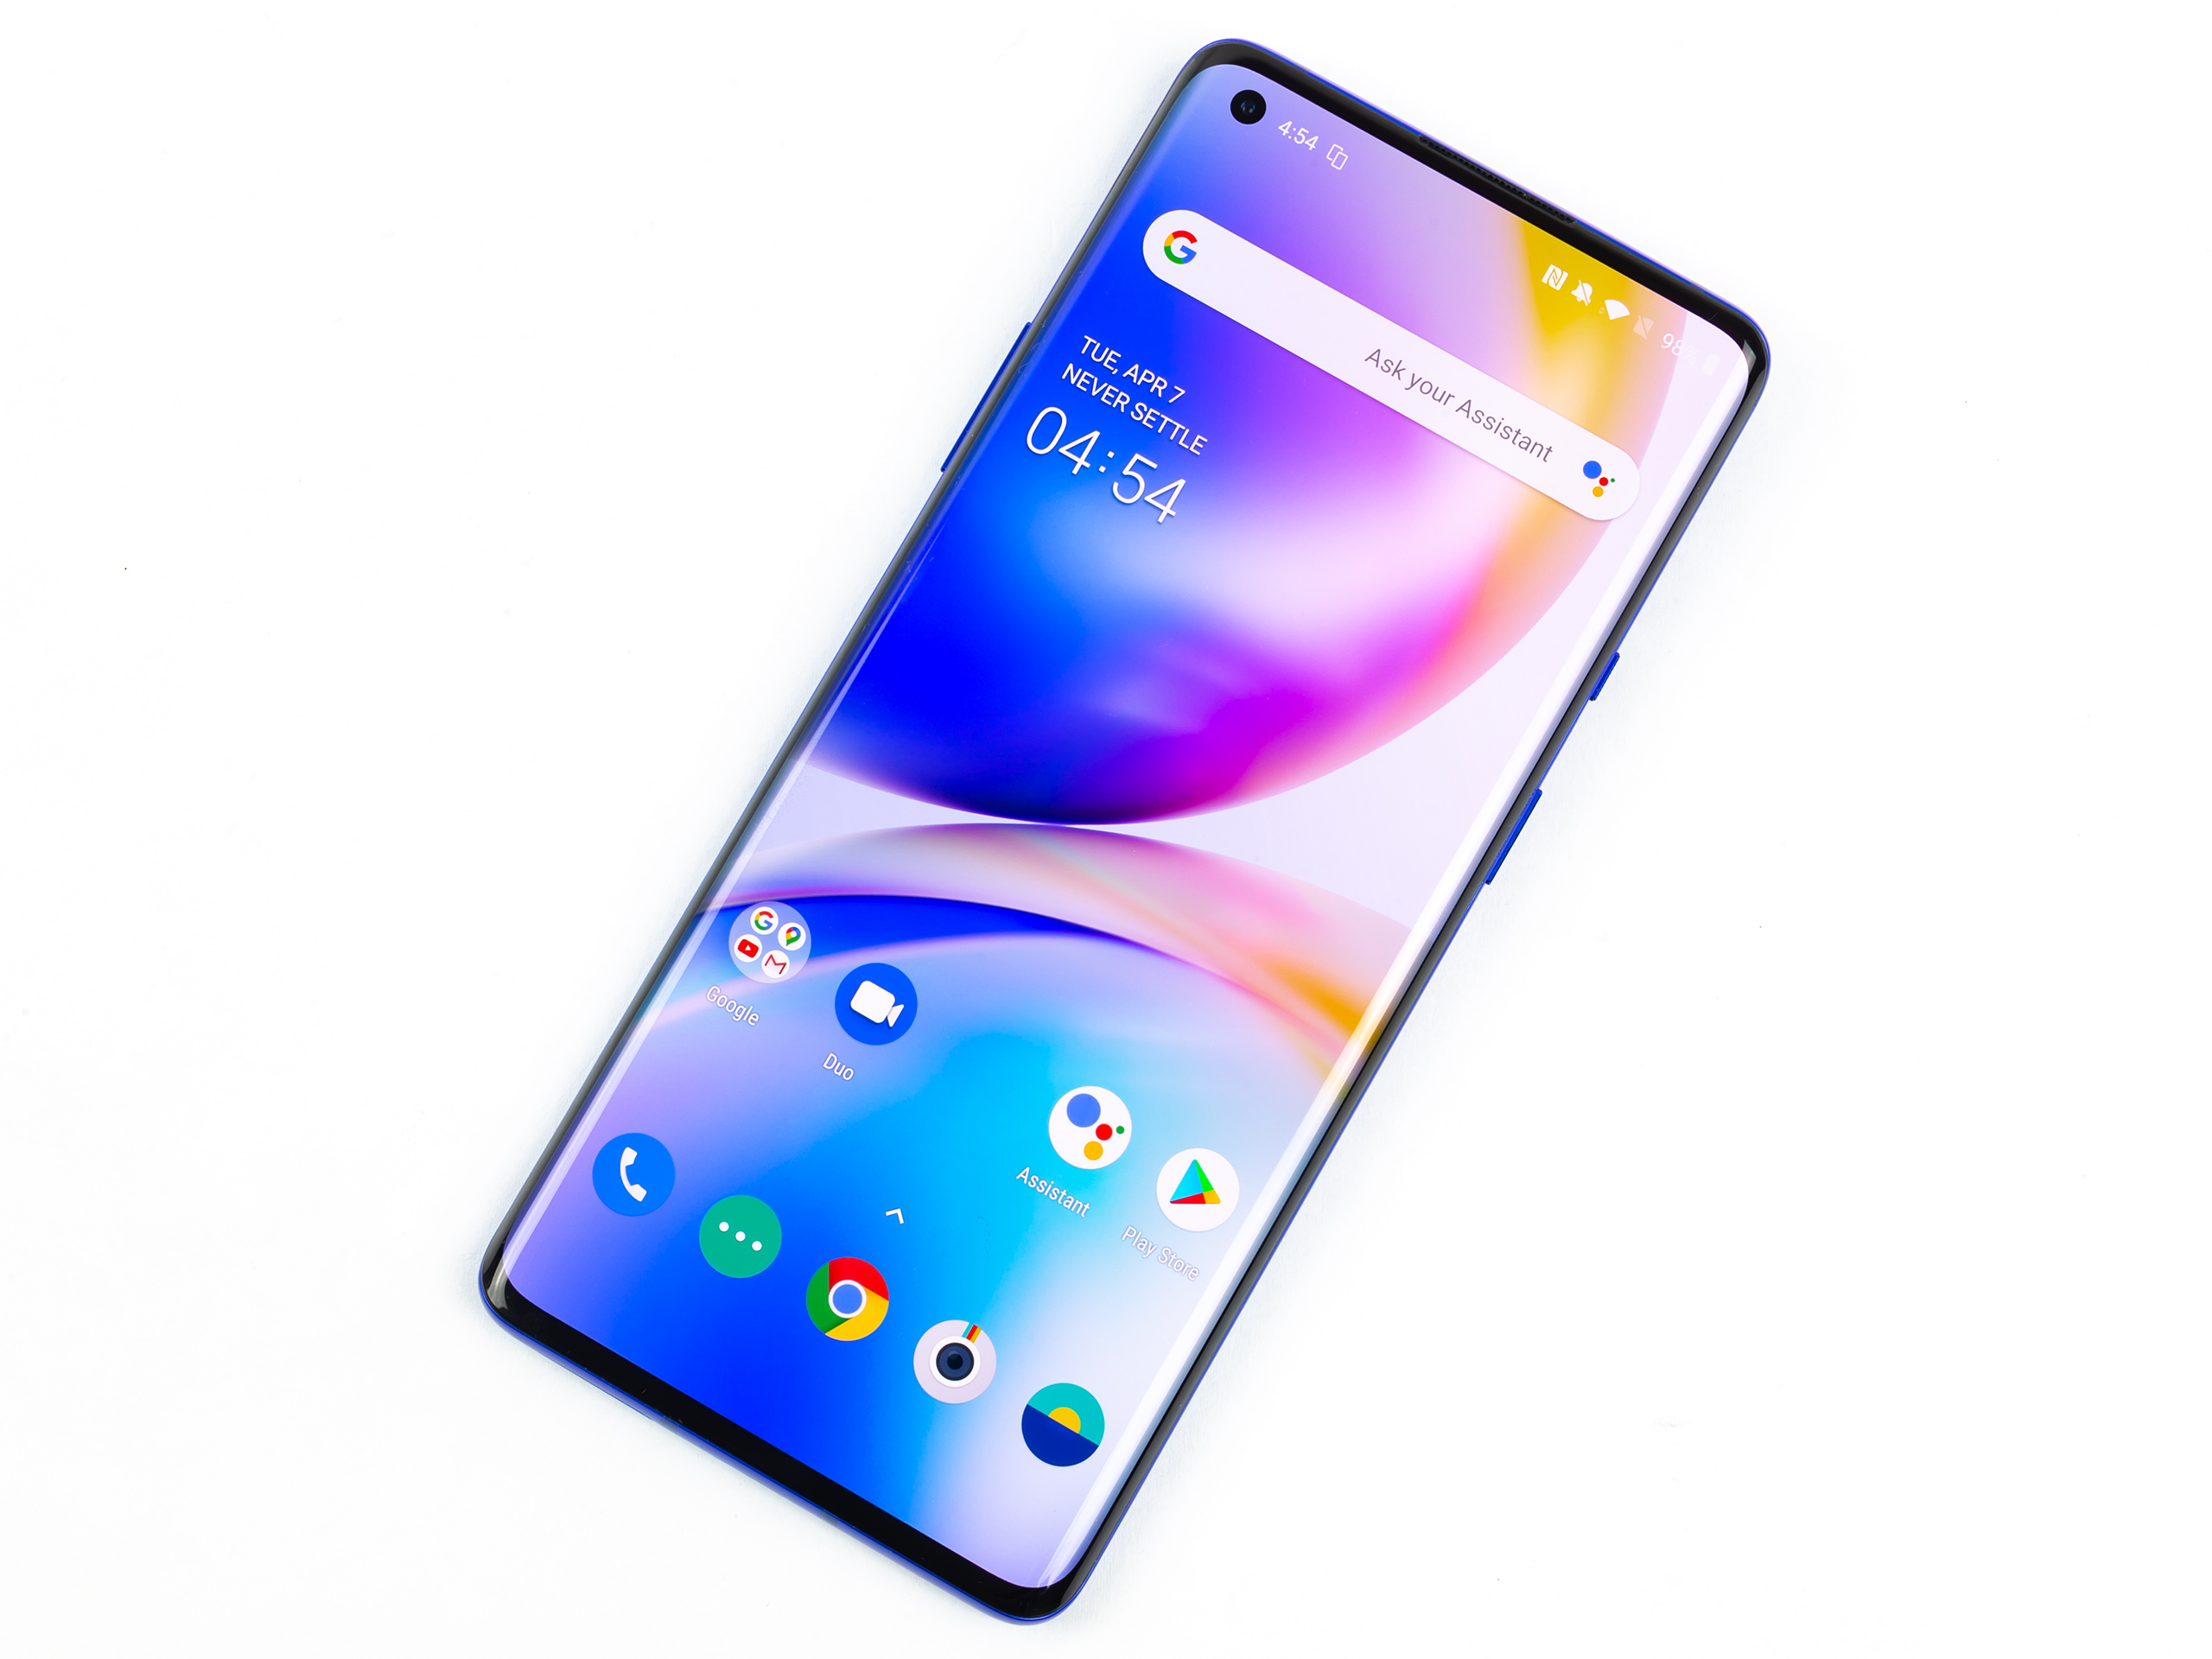 The OnePlus 8 Pro is among the year's best flagship Android phones.